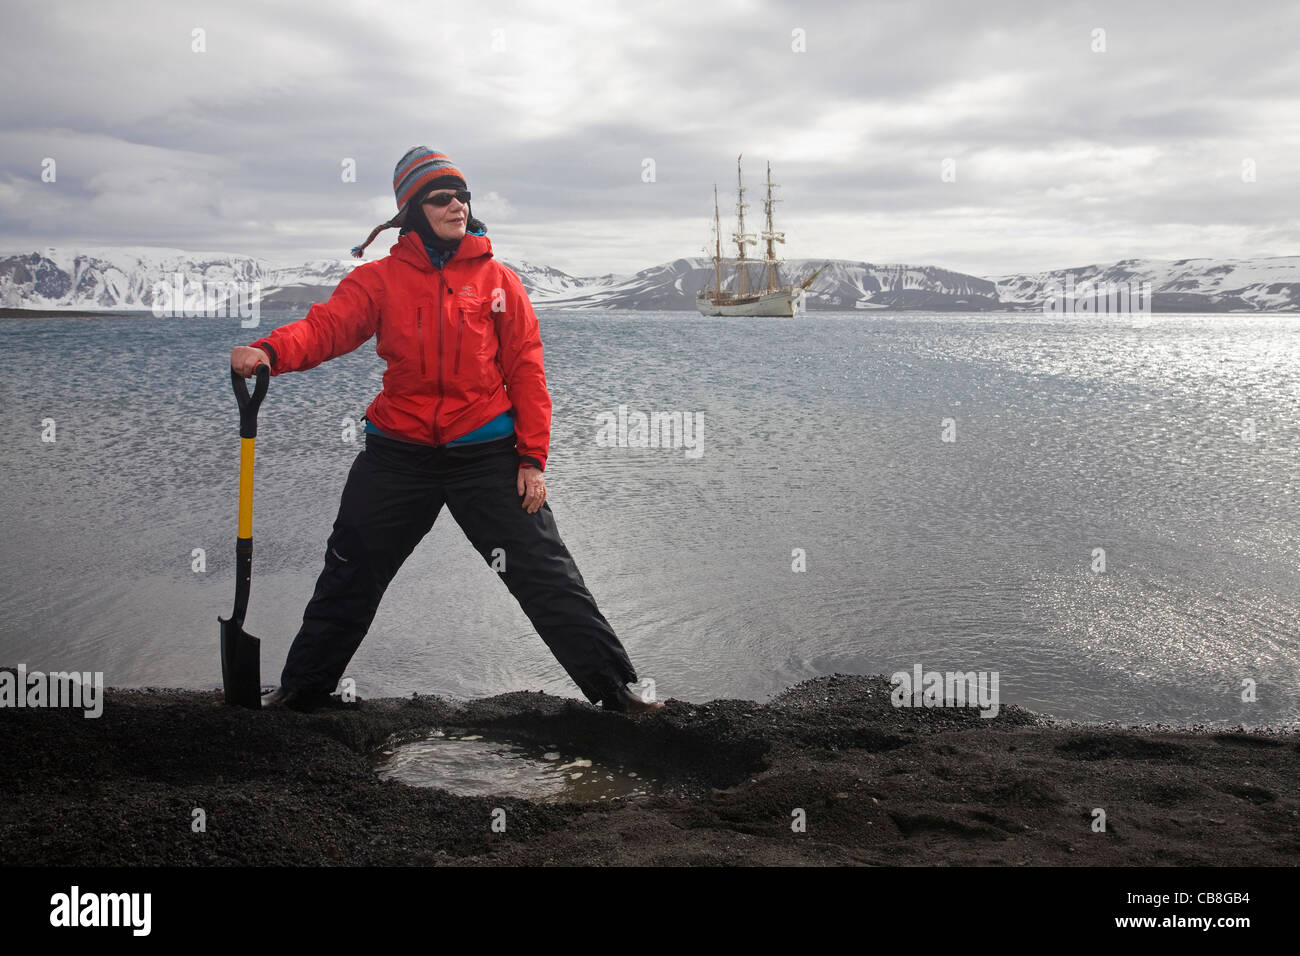 Tourist digging hot tub with volcanically heated water at Pendulum Cove, Deception Island, South Shetland Island, - Stock Image